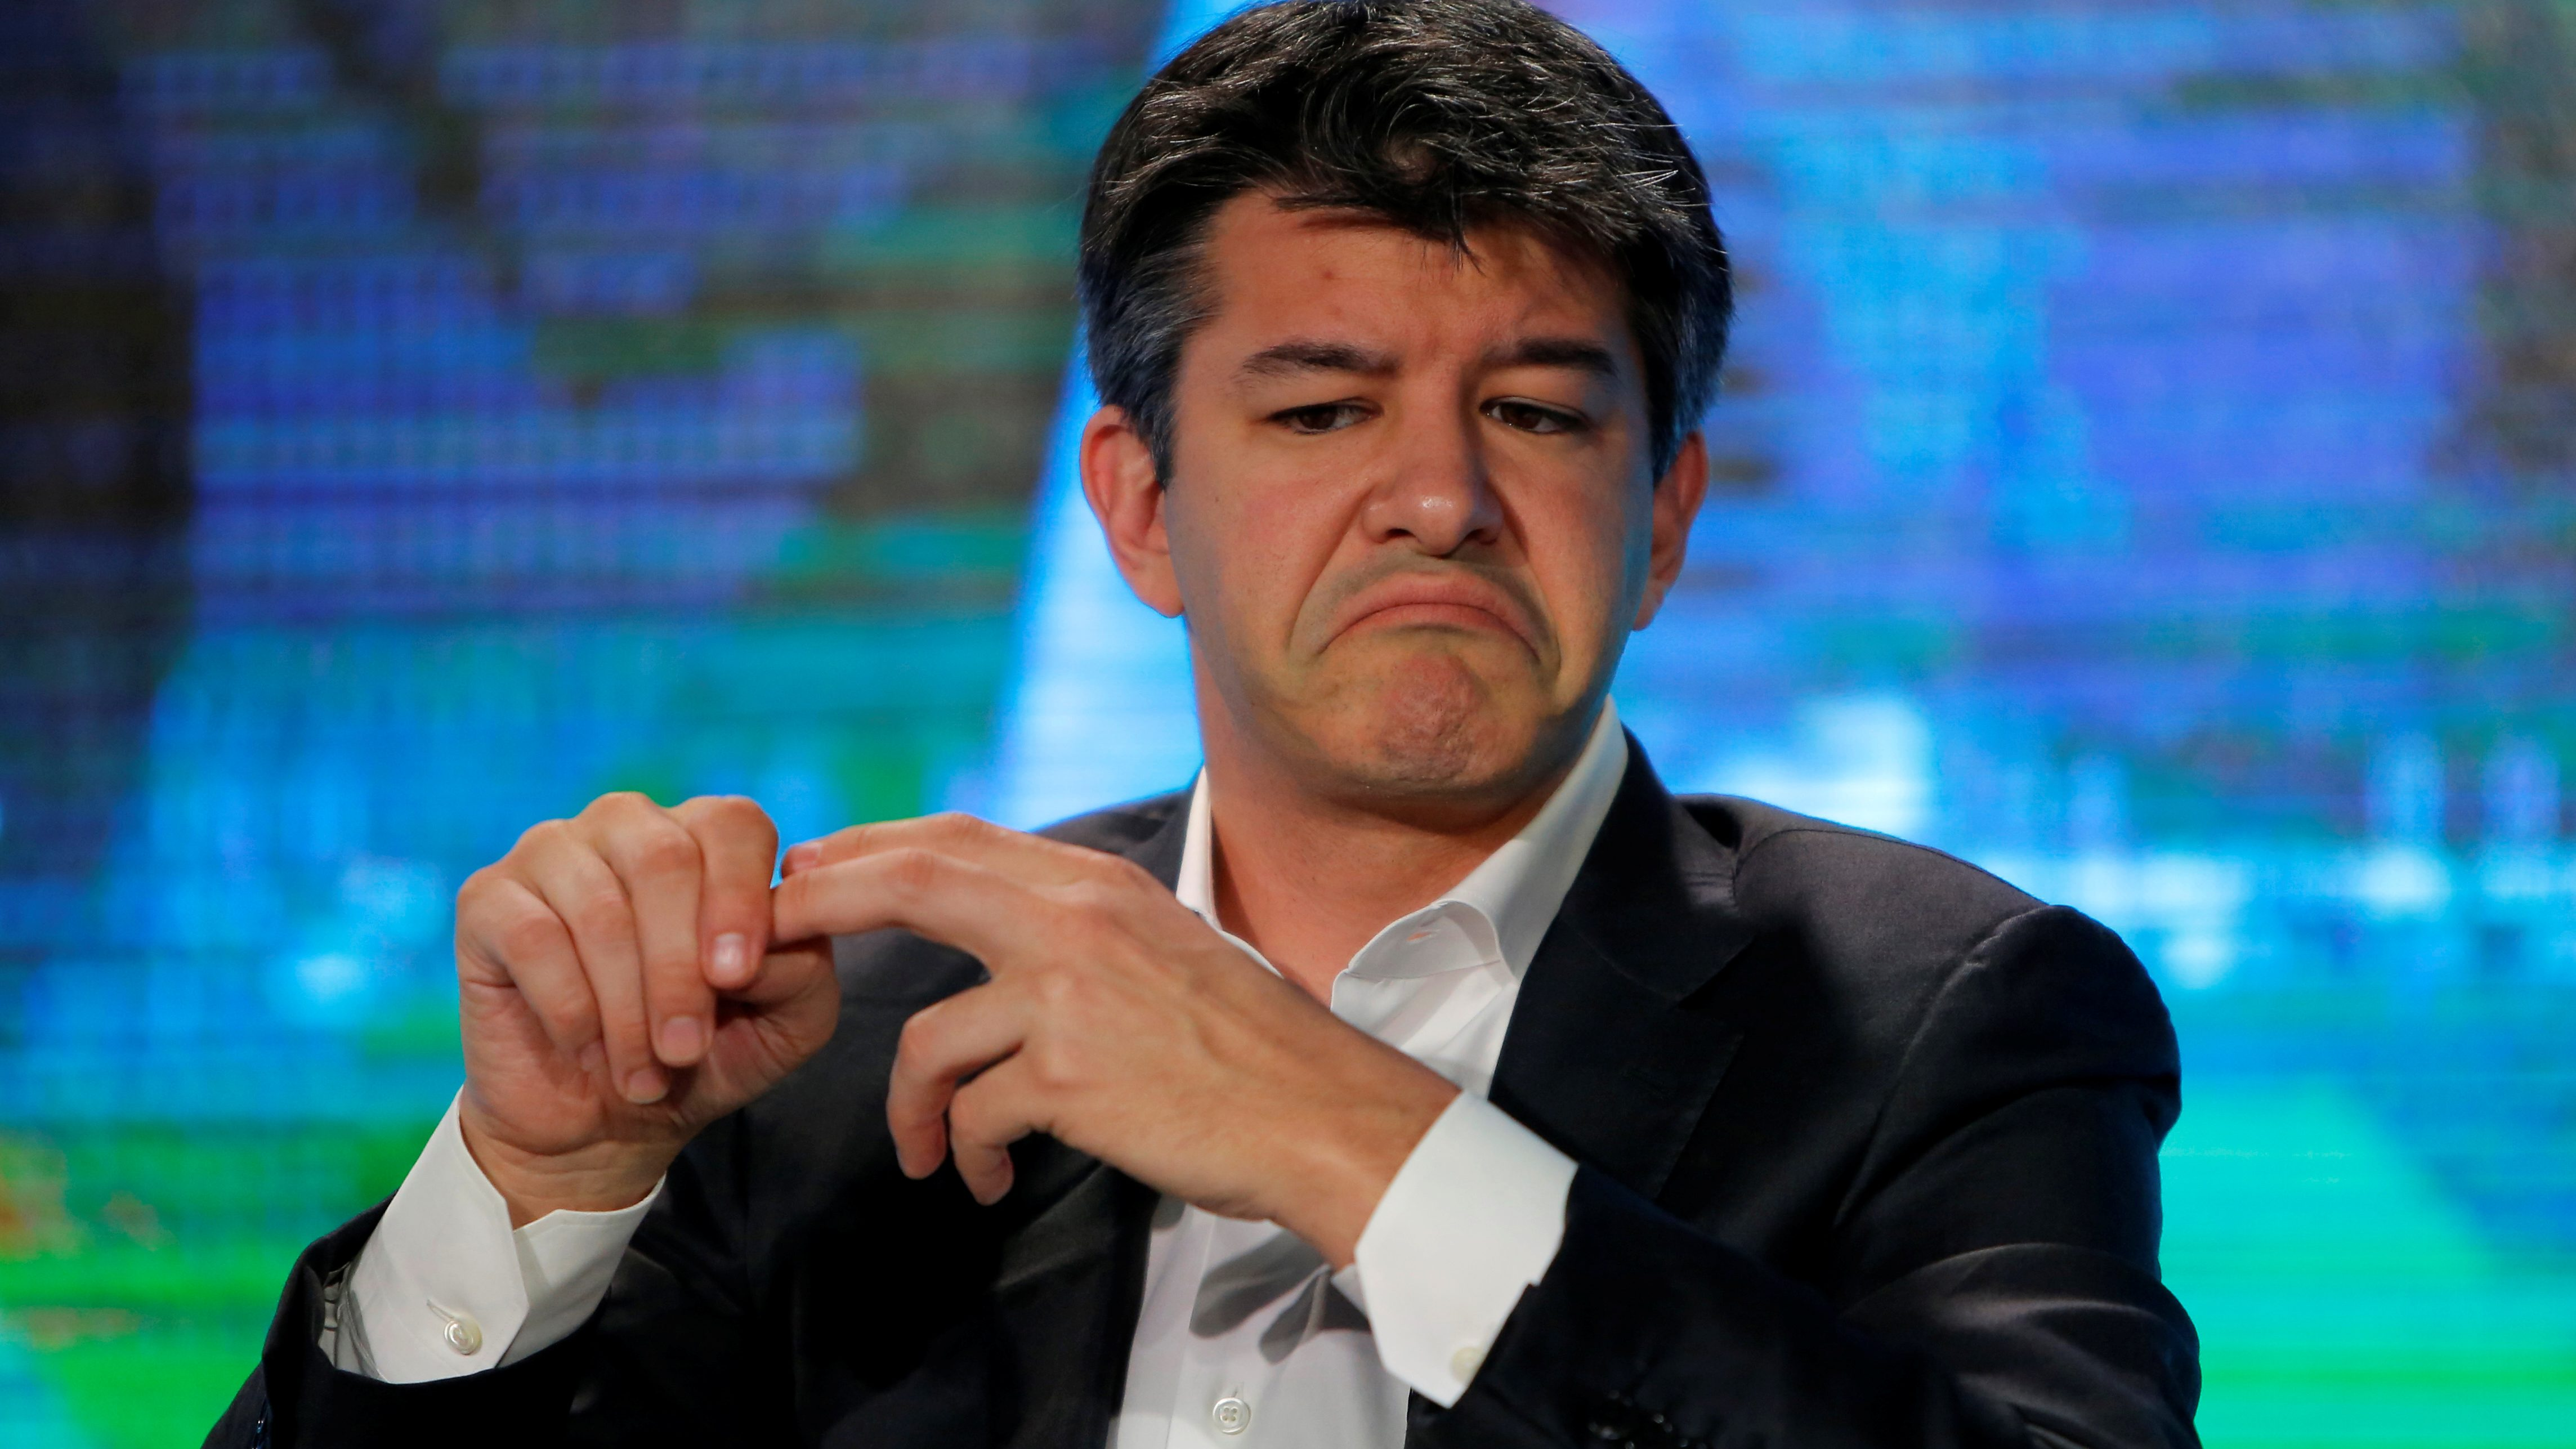 Uber CEO Travis Kalanick attends the summer World Economic Forum in Tianjin, China, June 26, 2016. REUTERS/Shu Zhang - RTX2I8Y7